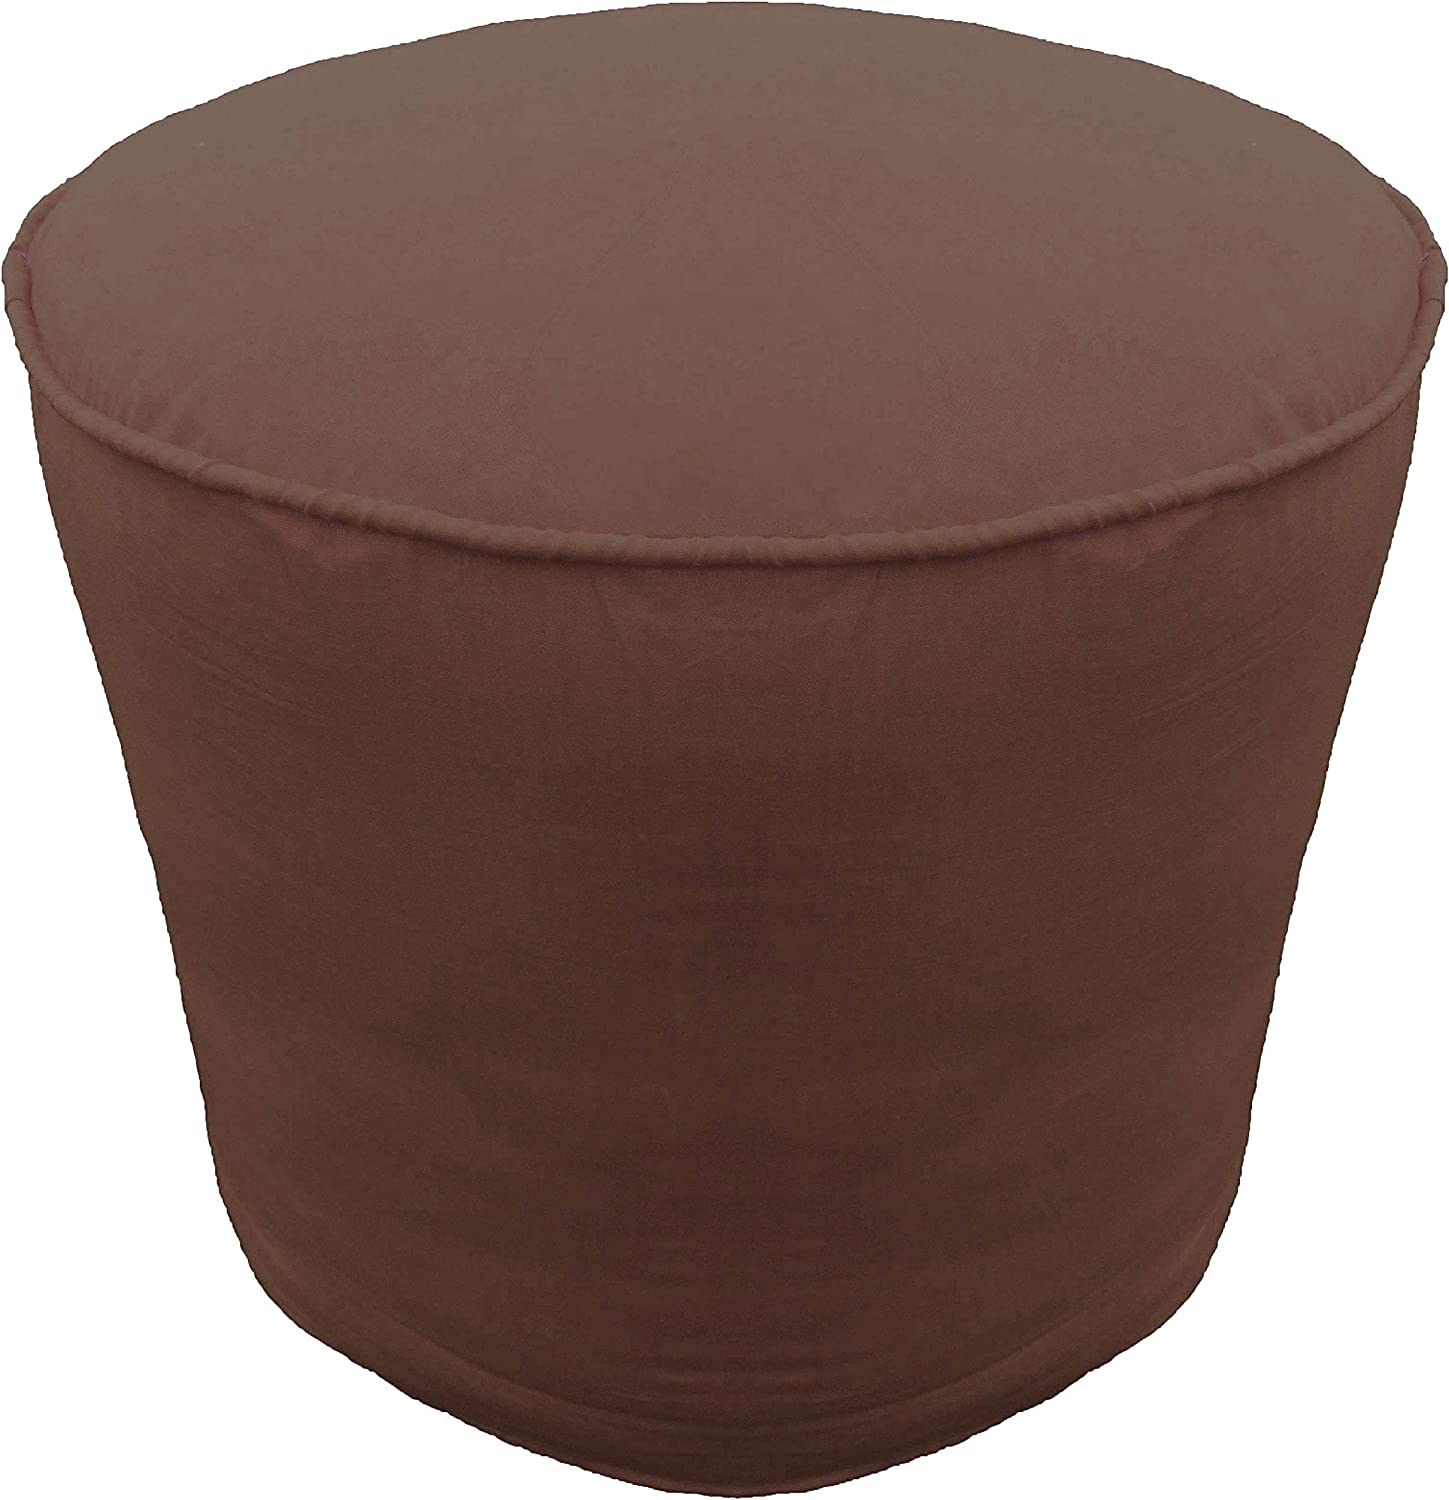 Columbus Mall Ottoman Max 43% OFF Footstool Cover Cotton Round Pouf with Piping Brow